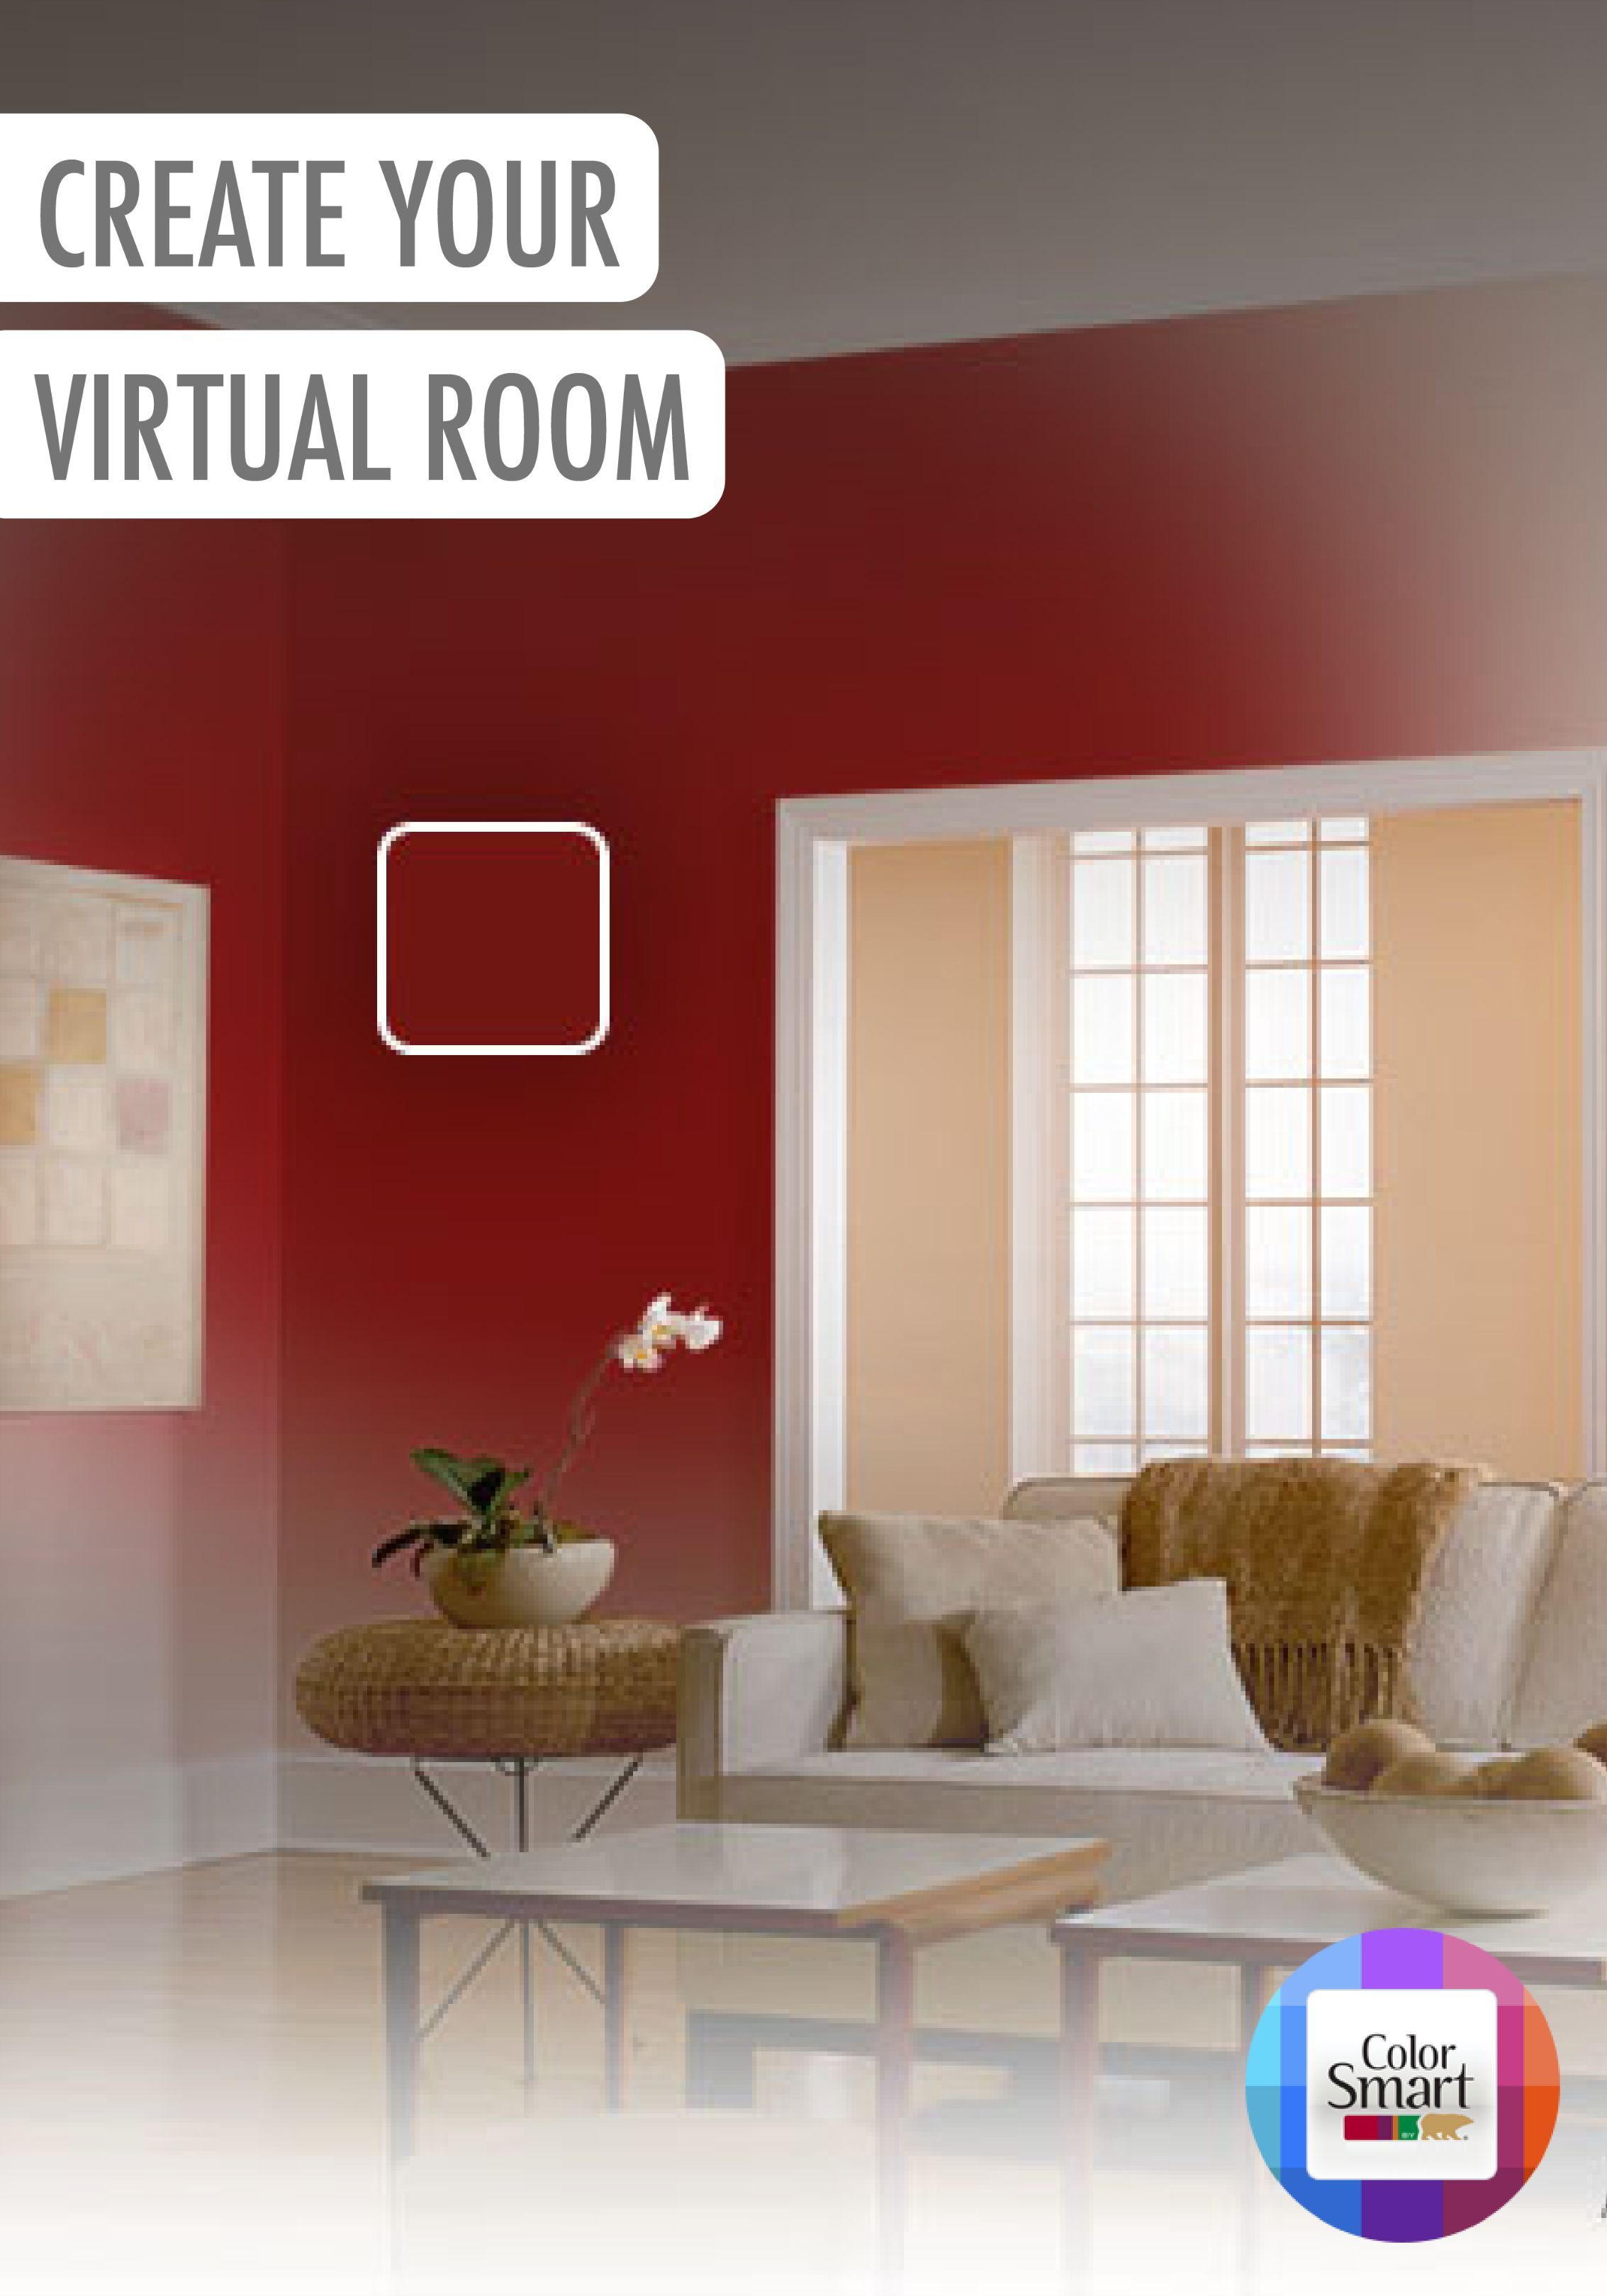 Finding The Right Paint Color For Your Home Can Be An Overwhelming Process But Luckily